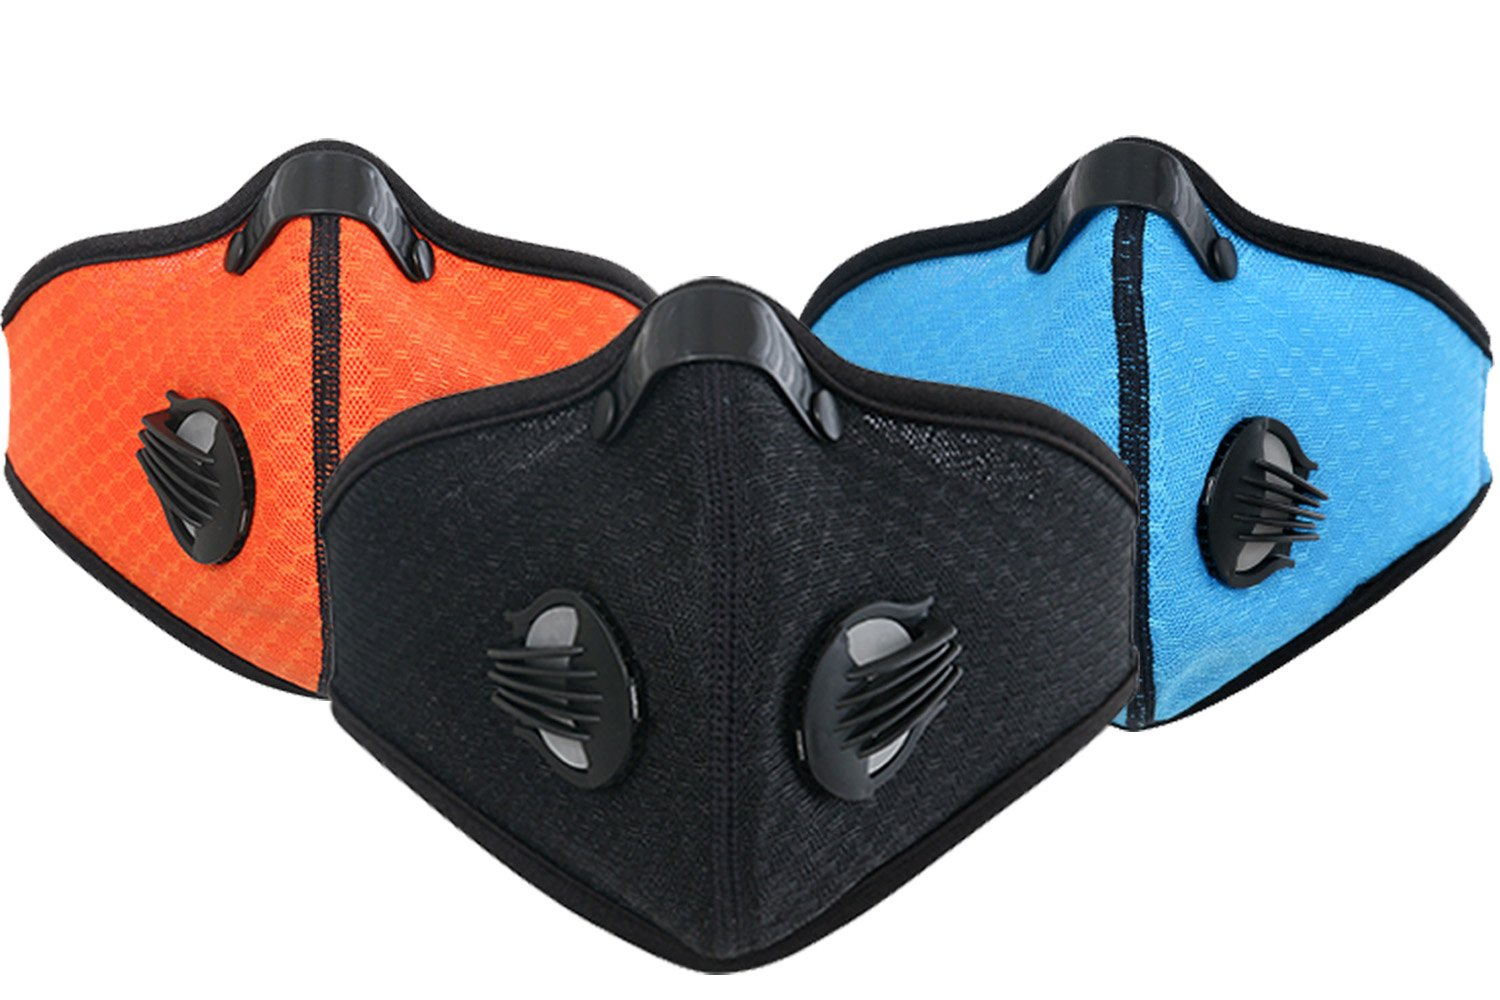 Dustproof Mask - Activated Carbon Dust Masks - with Extra Filter Cotton Sheet and Valves for Exhaust Gas, Anti Pollen Allergy, PM2.5, Running, Cycling, Outdoor Activities (2 Pack Black+Black, Type 1) by Infityle (Image #2)